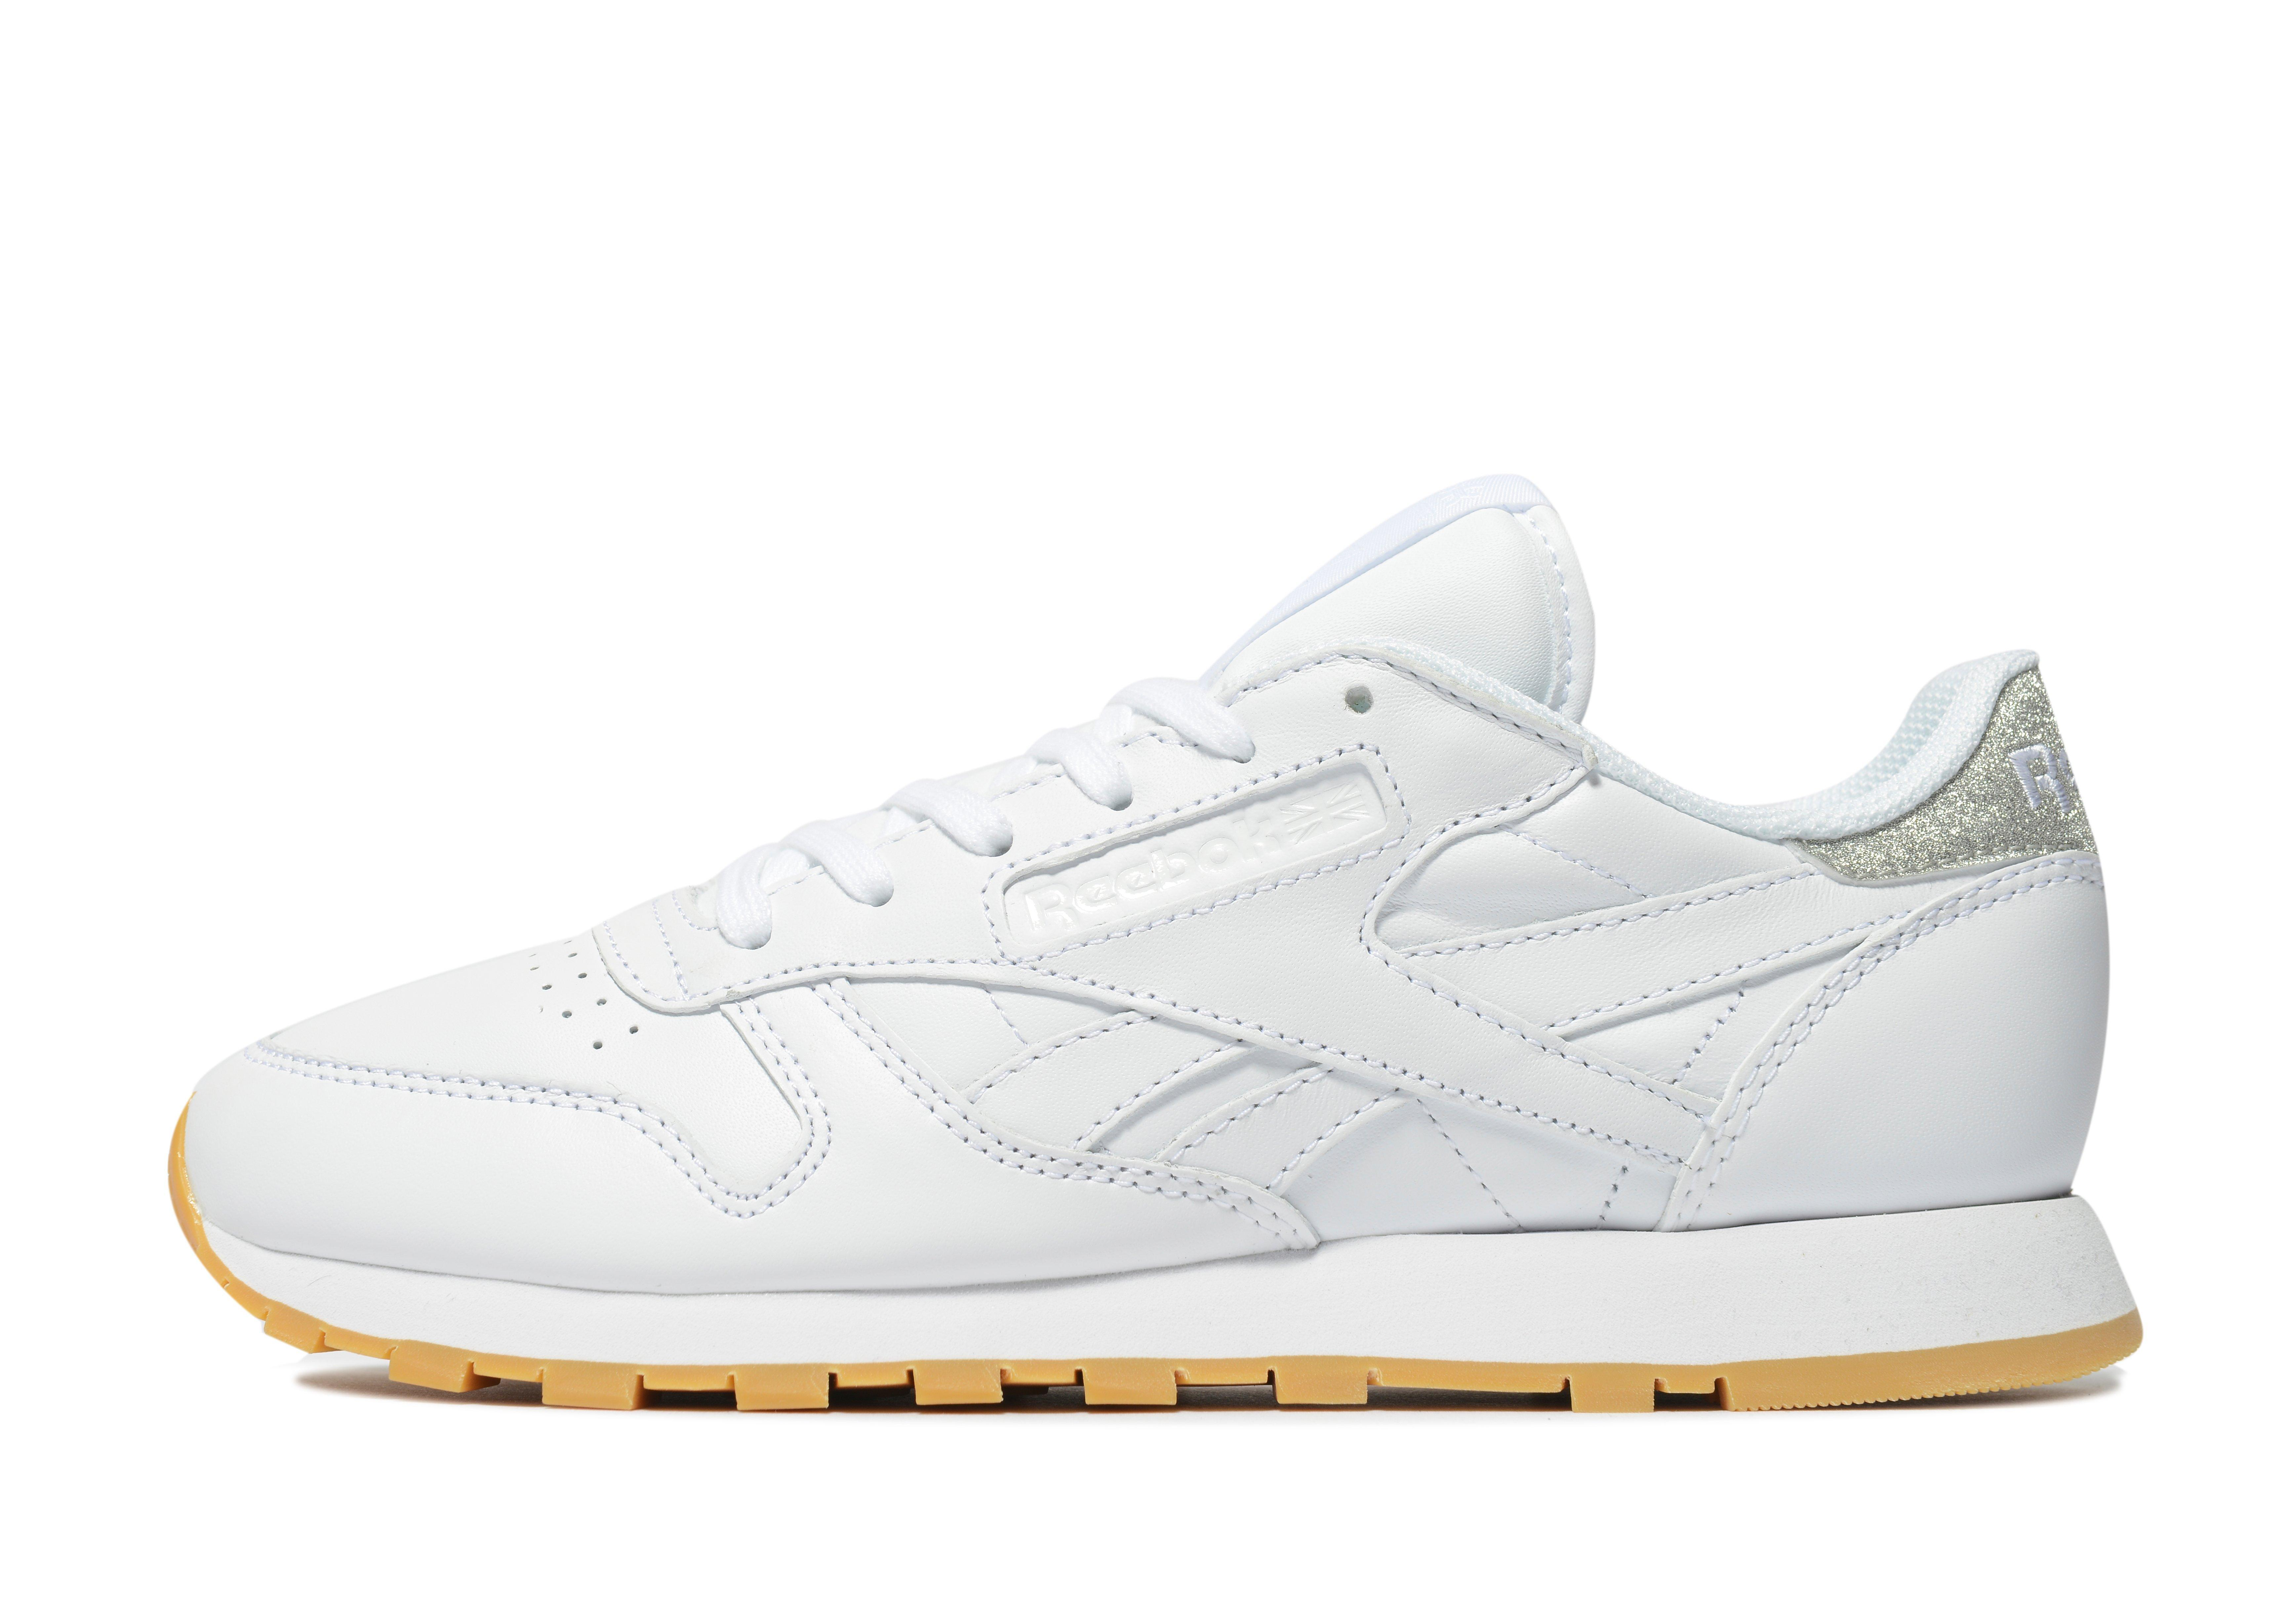 cfc83cf03145 Gallery. Previously sold at: JD Sports · Women's Reebok Classic Leather  Sneakers